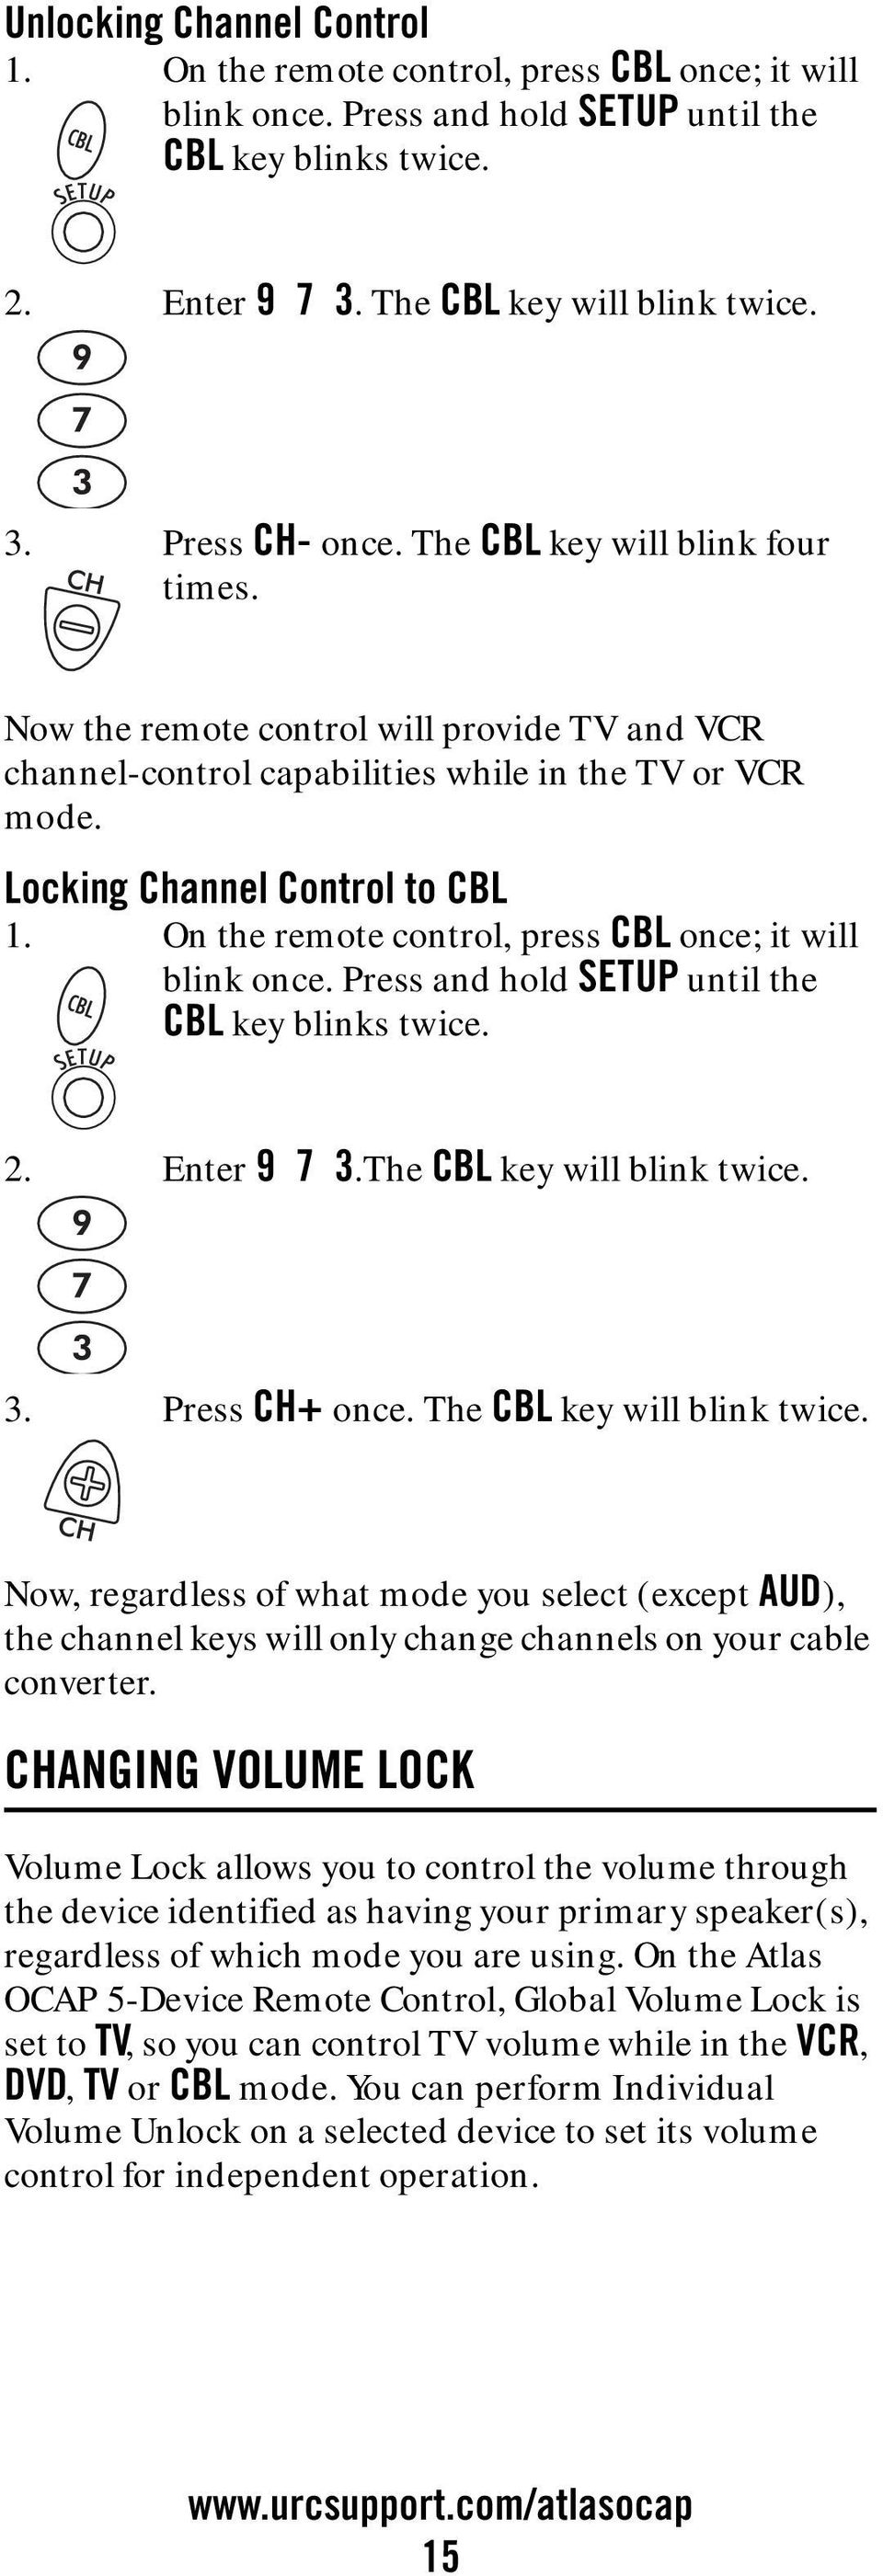 On the remote control, press CBL once; it will blink once. Press and hold SETUP until the CBL key blinks twice. 2. Enter 9 7 3.The CBL key will blink twice. 3. Press CH+ once.